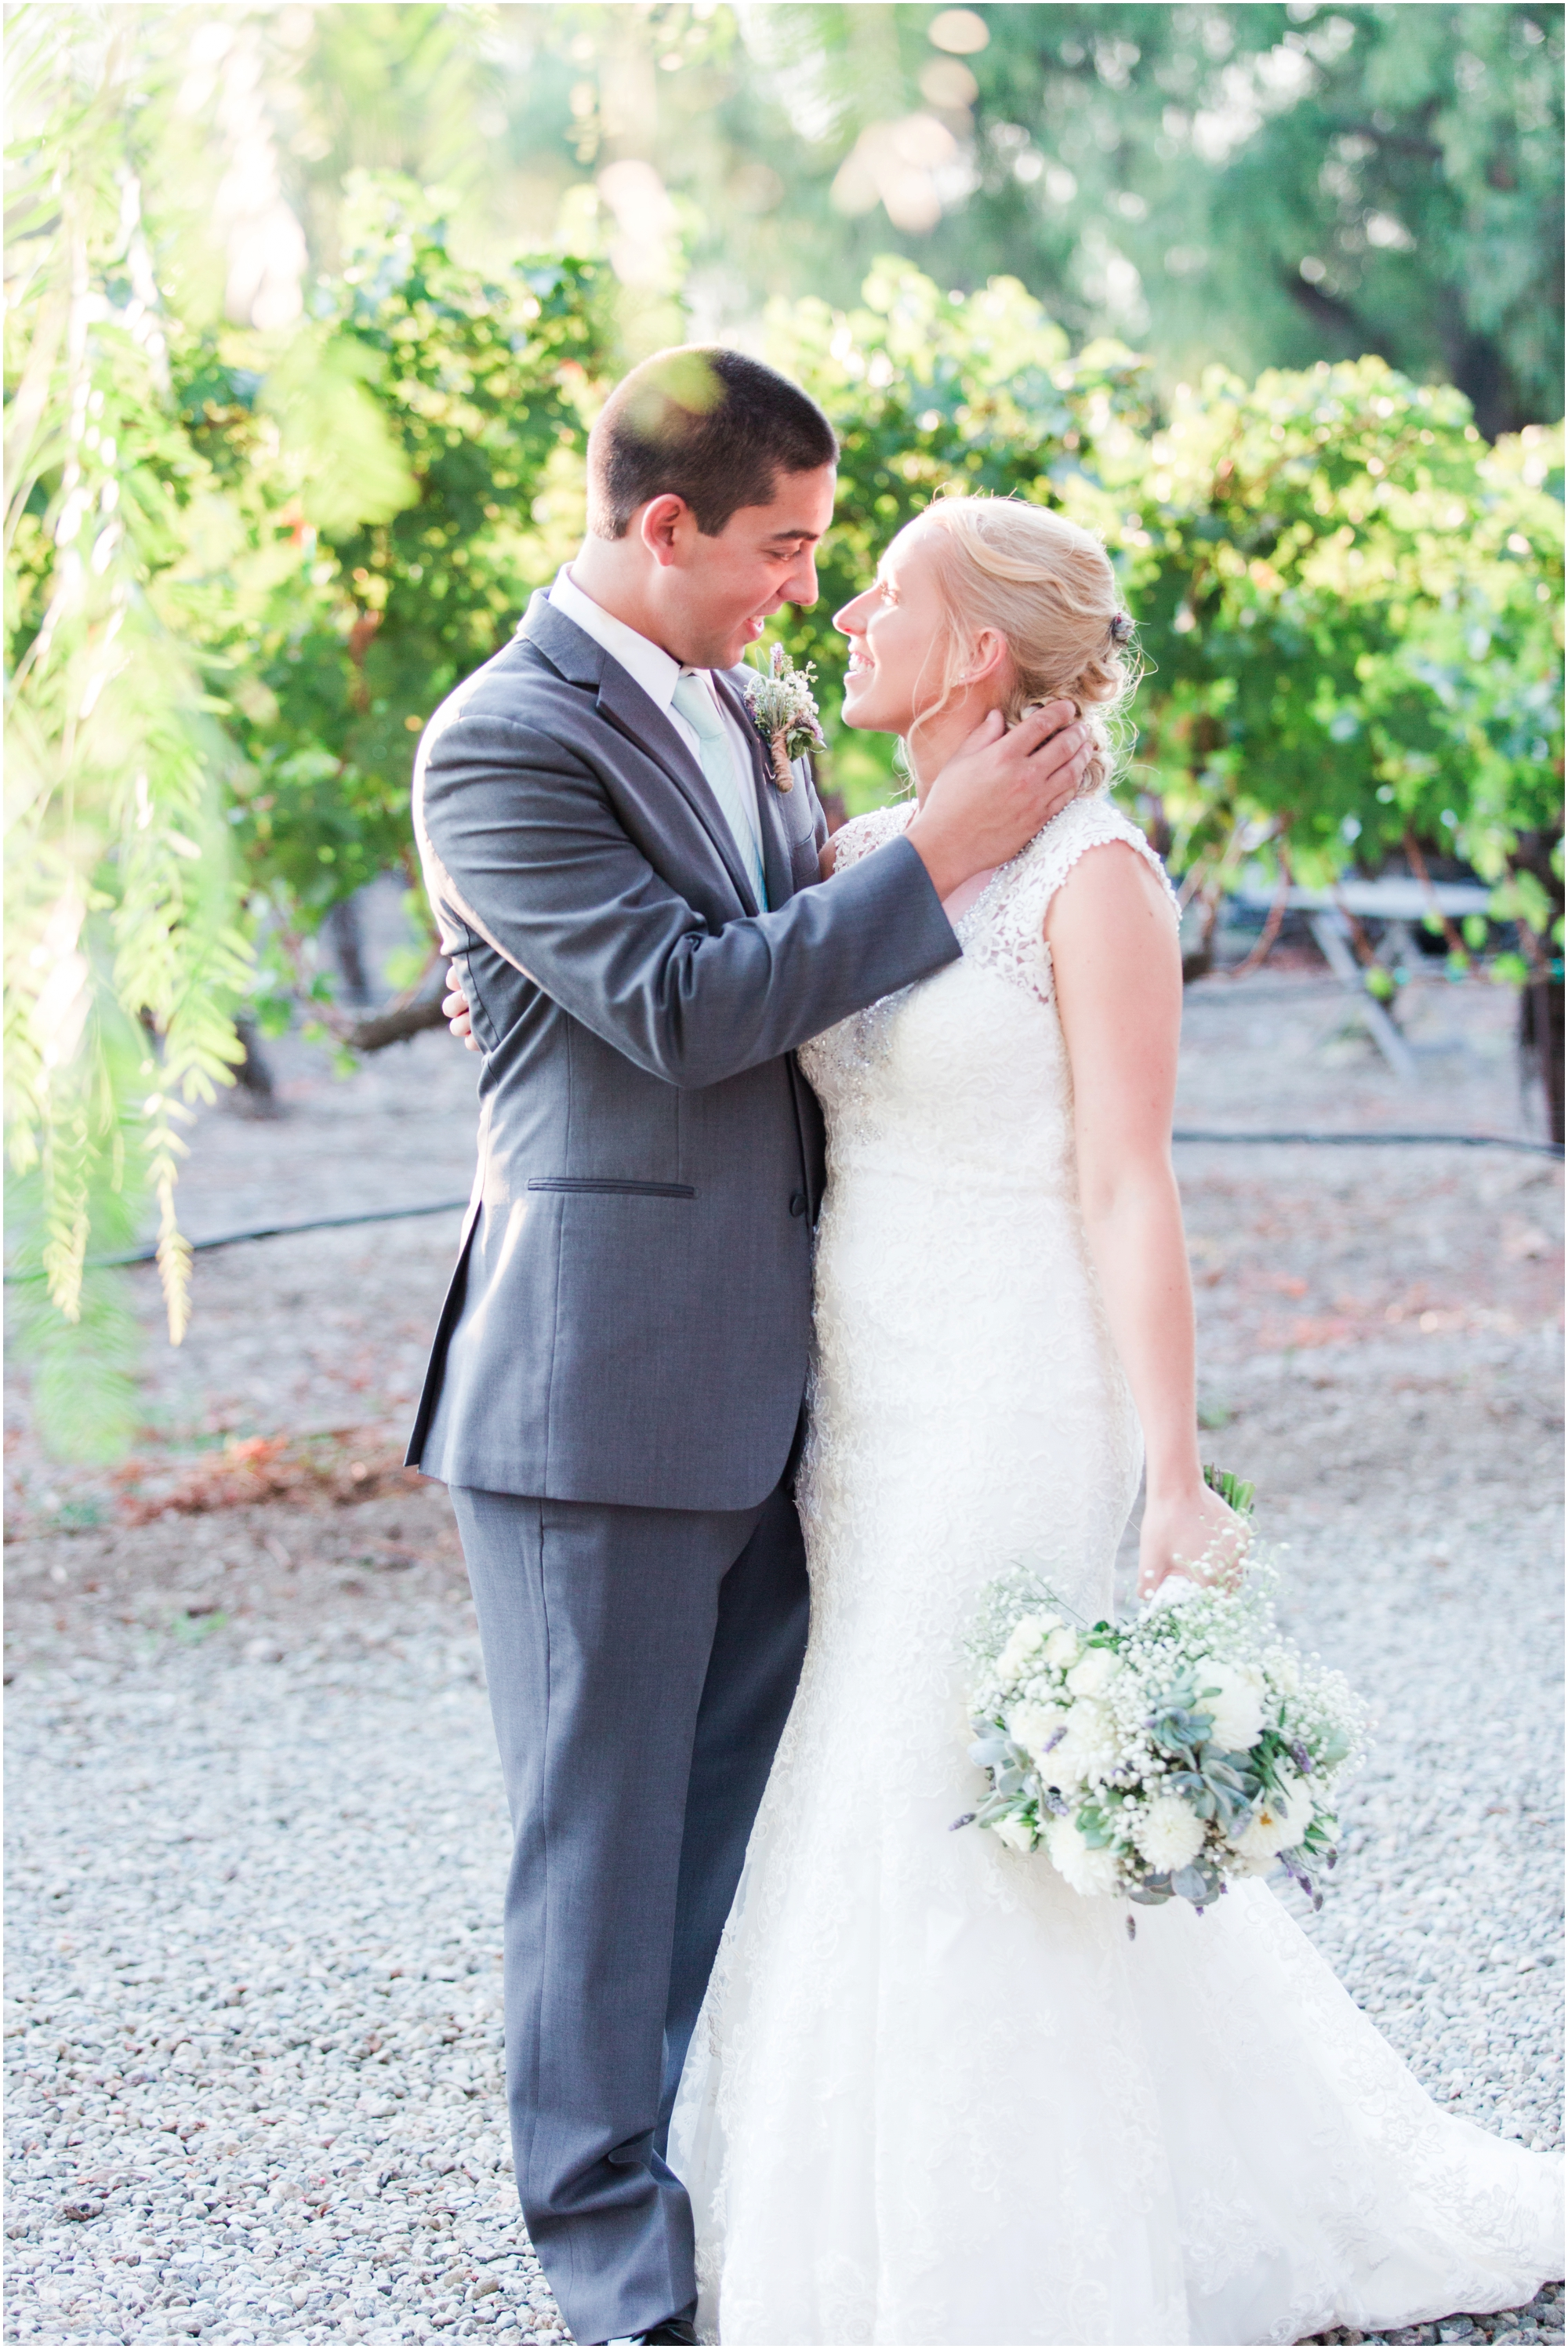 Retzlaff Winery wedding pictures by Briana Calderon Photography_2326.jpg